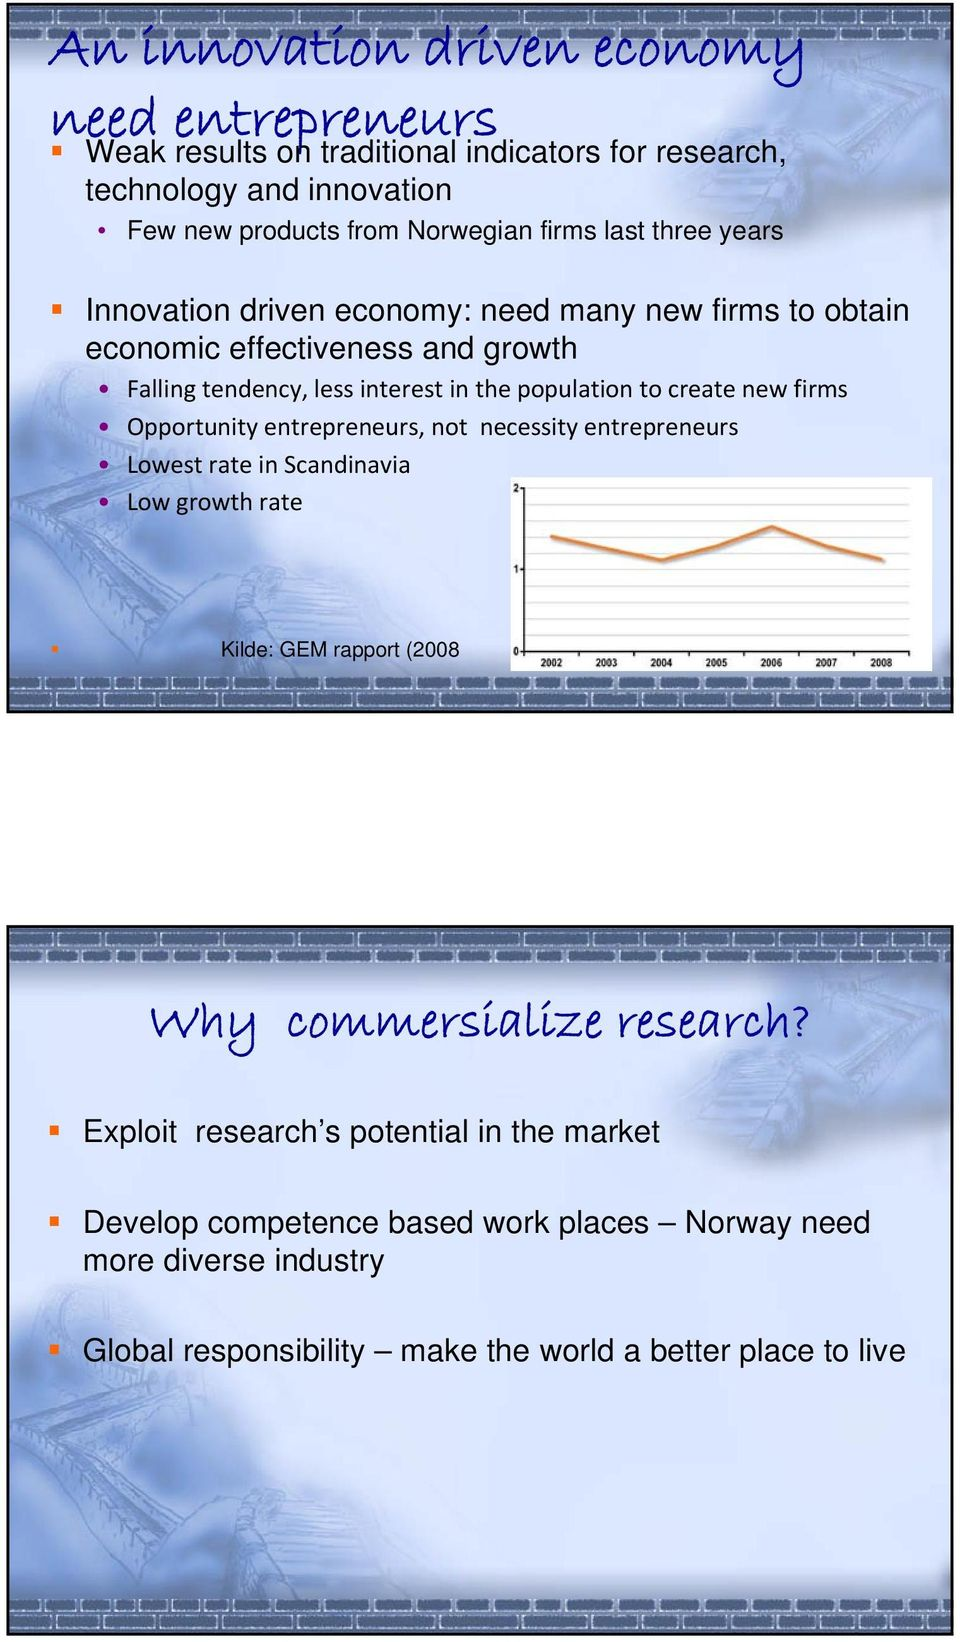 create new firms Opportunity entrepreneurs, not necessity entrepreneurs Lowest rate in Scandinavia Low growth rate Kilde: GEM rapport (2008 Why commersialize research?